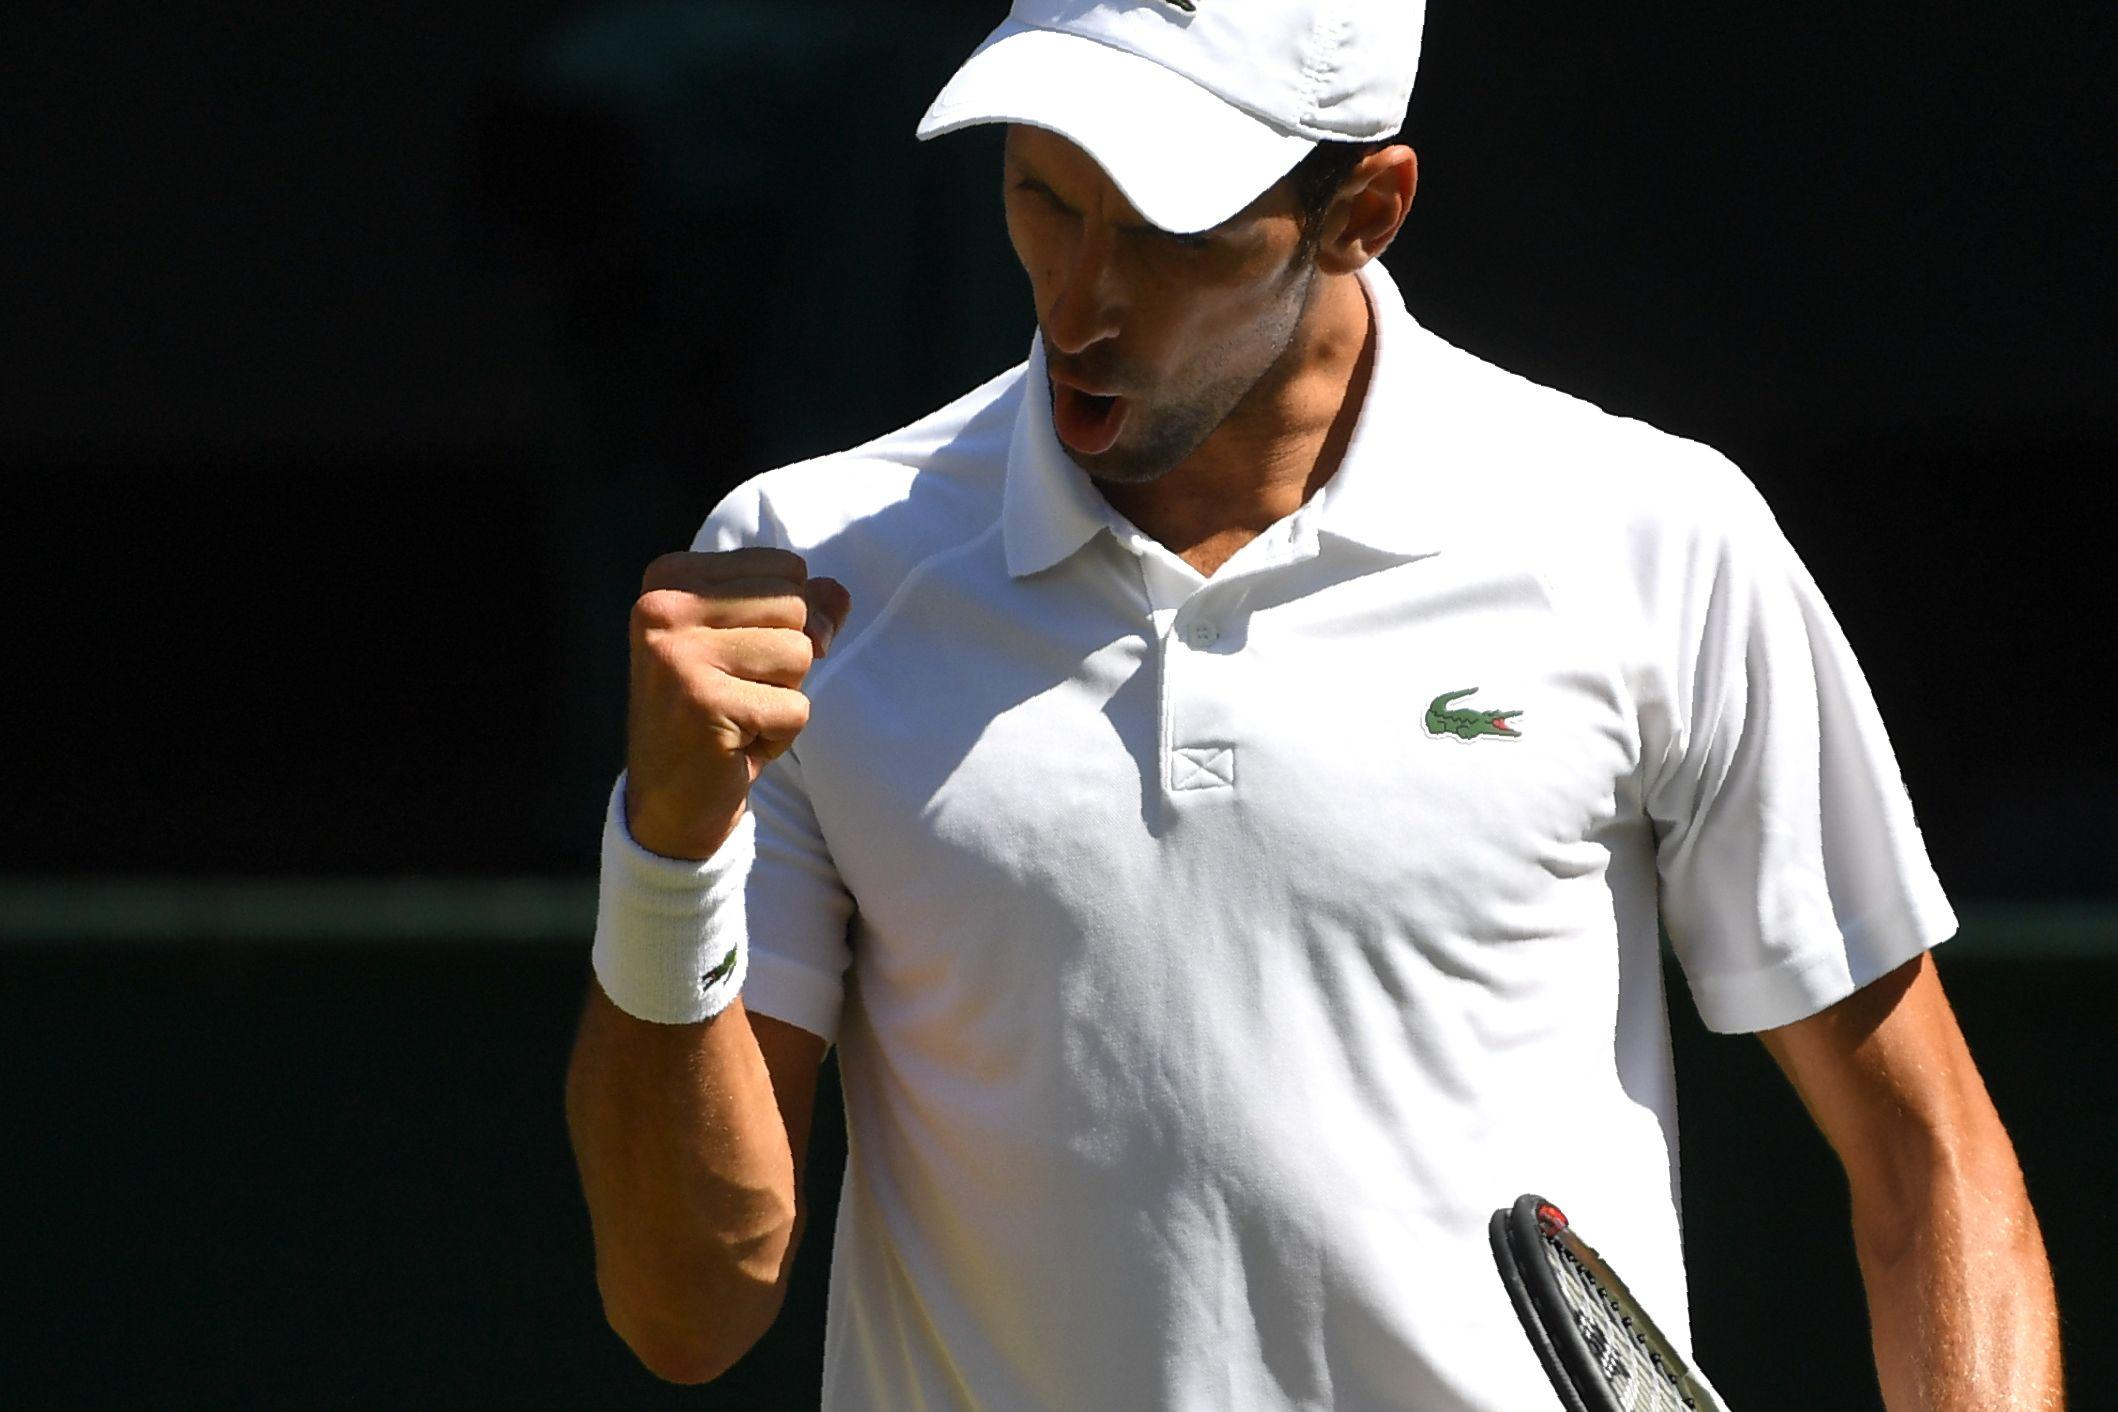 Serbian superstar Djokovic defeated Kevin Anderson